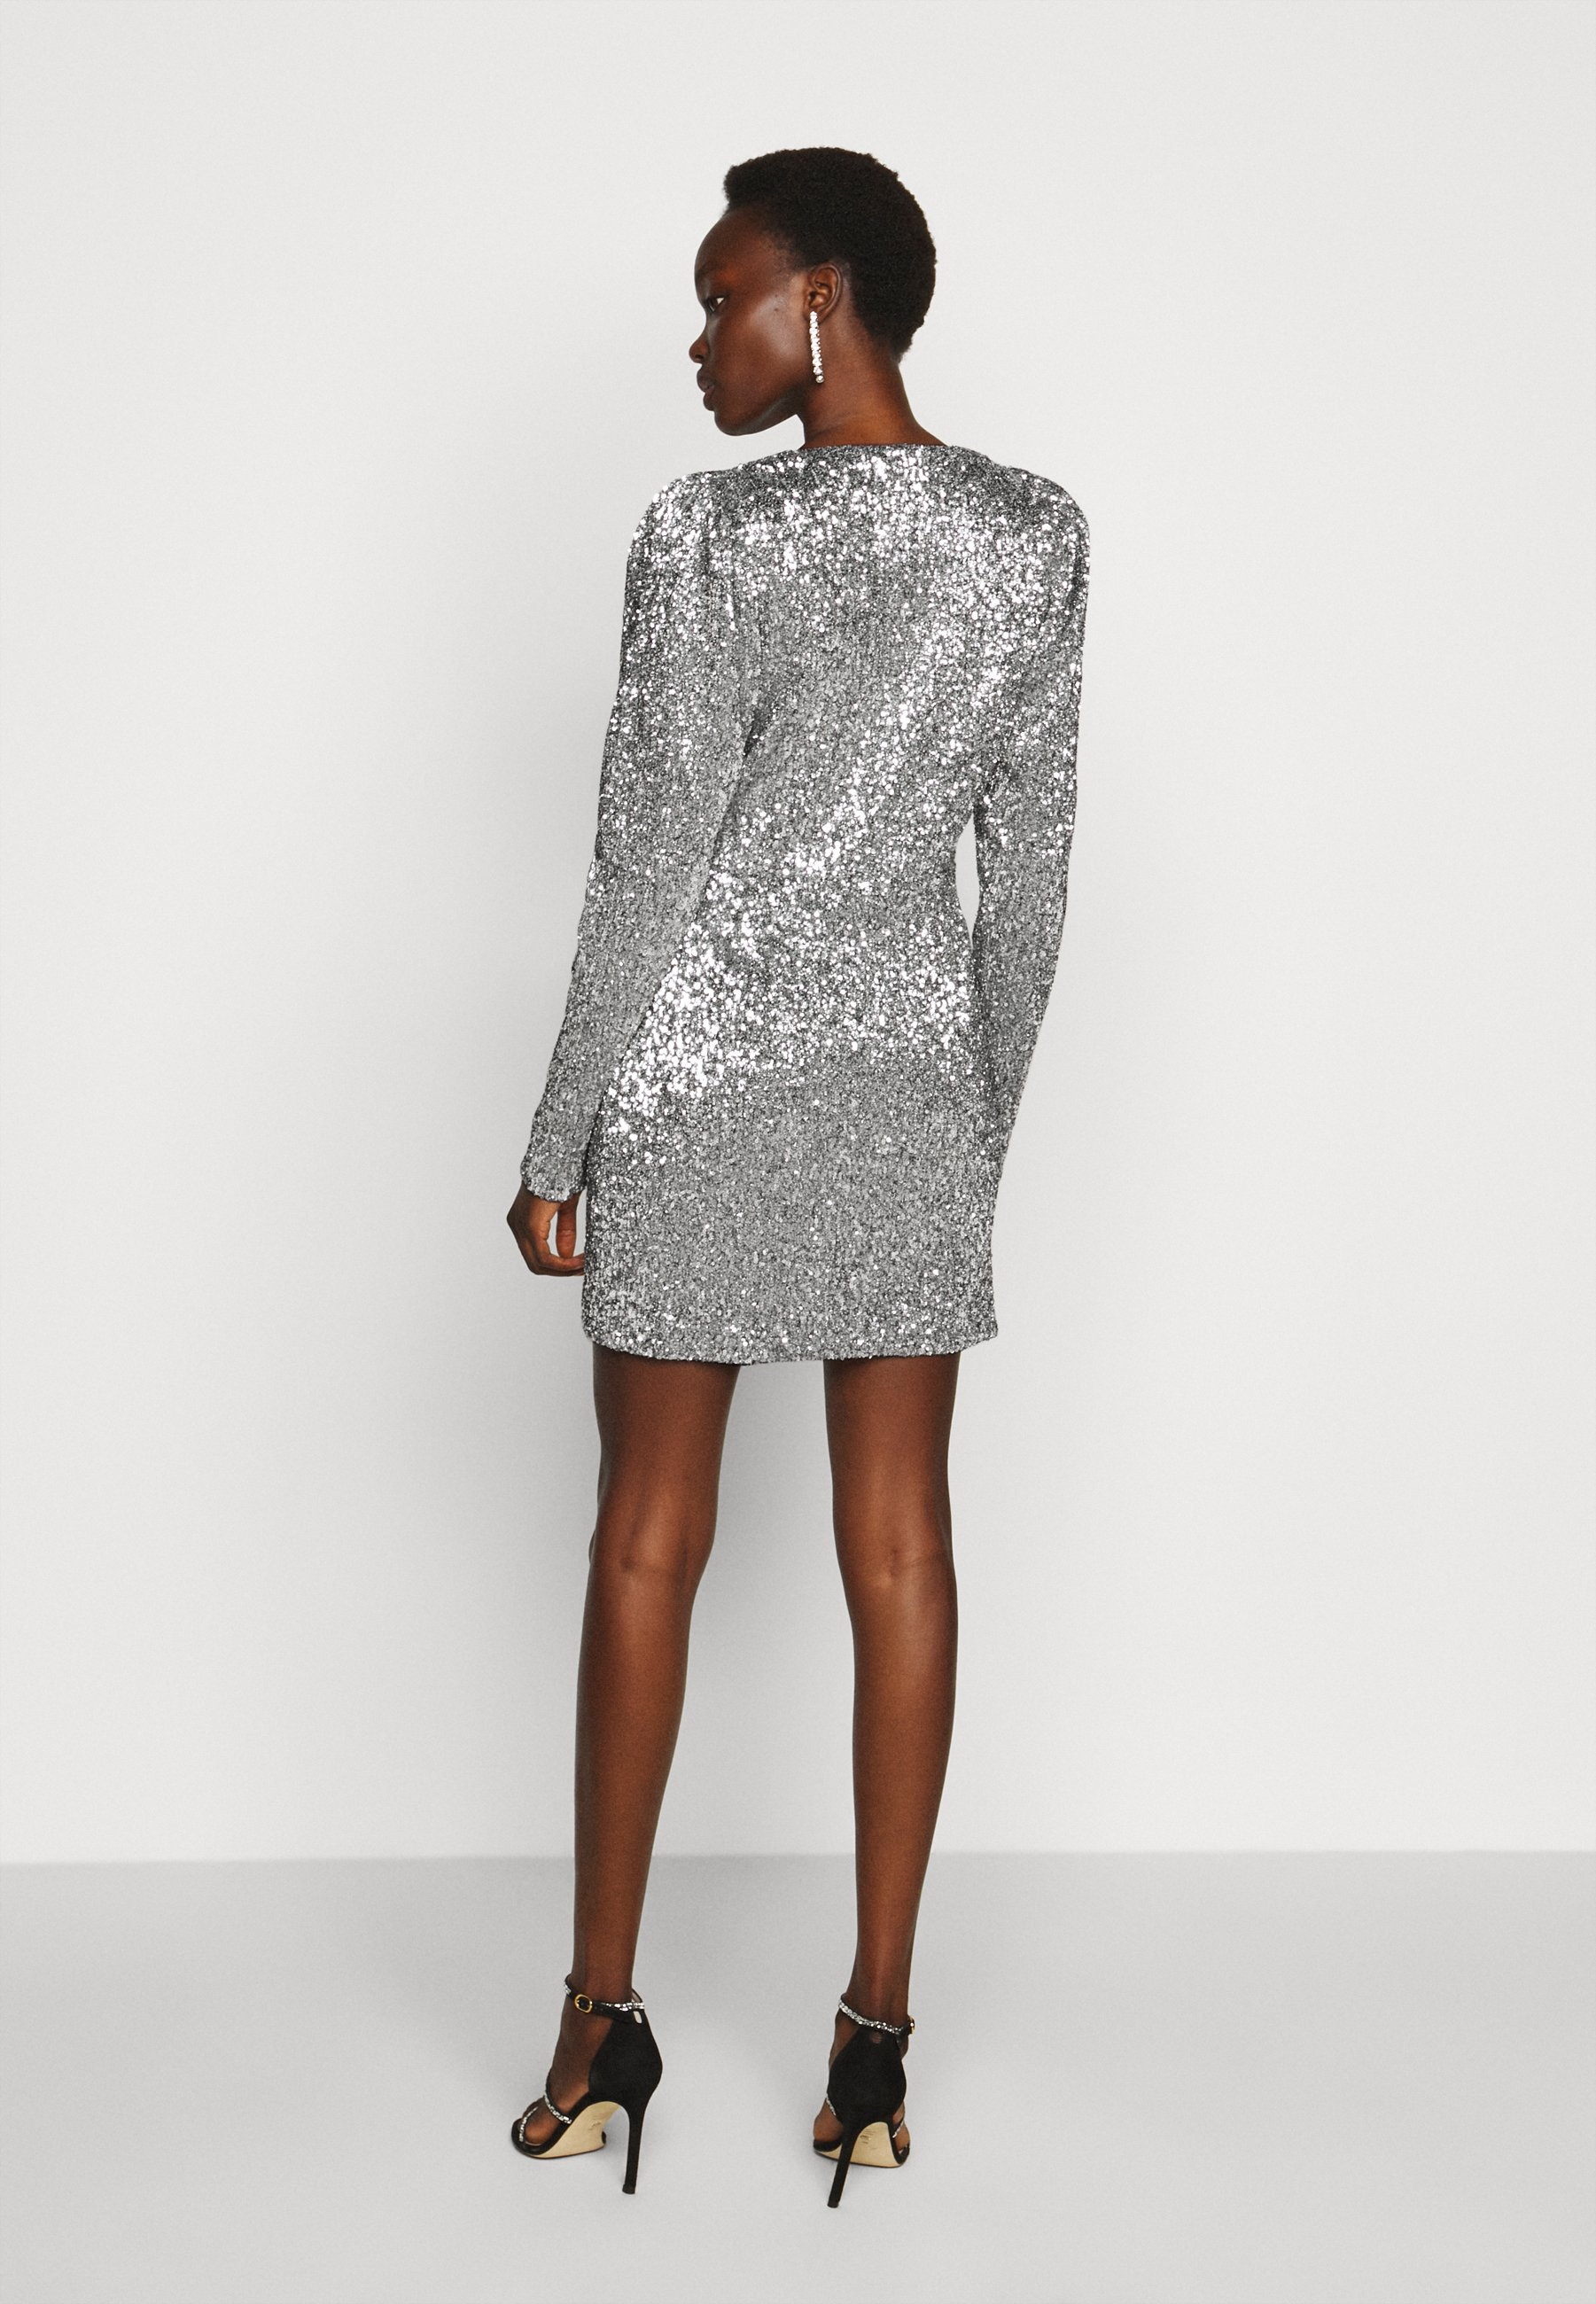 Professional Women's Clothing 2nd Day EDITION TRINA Cocktail dress / Party dress silver cJgxBe8y1